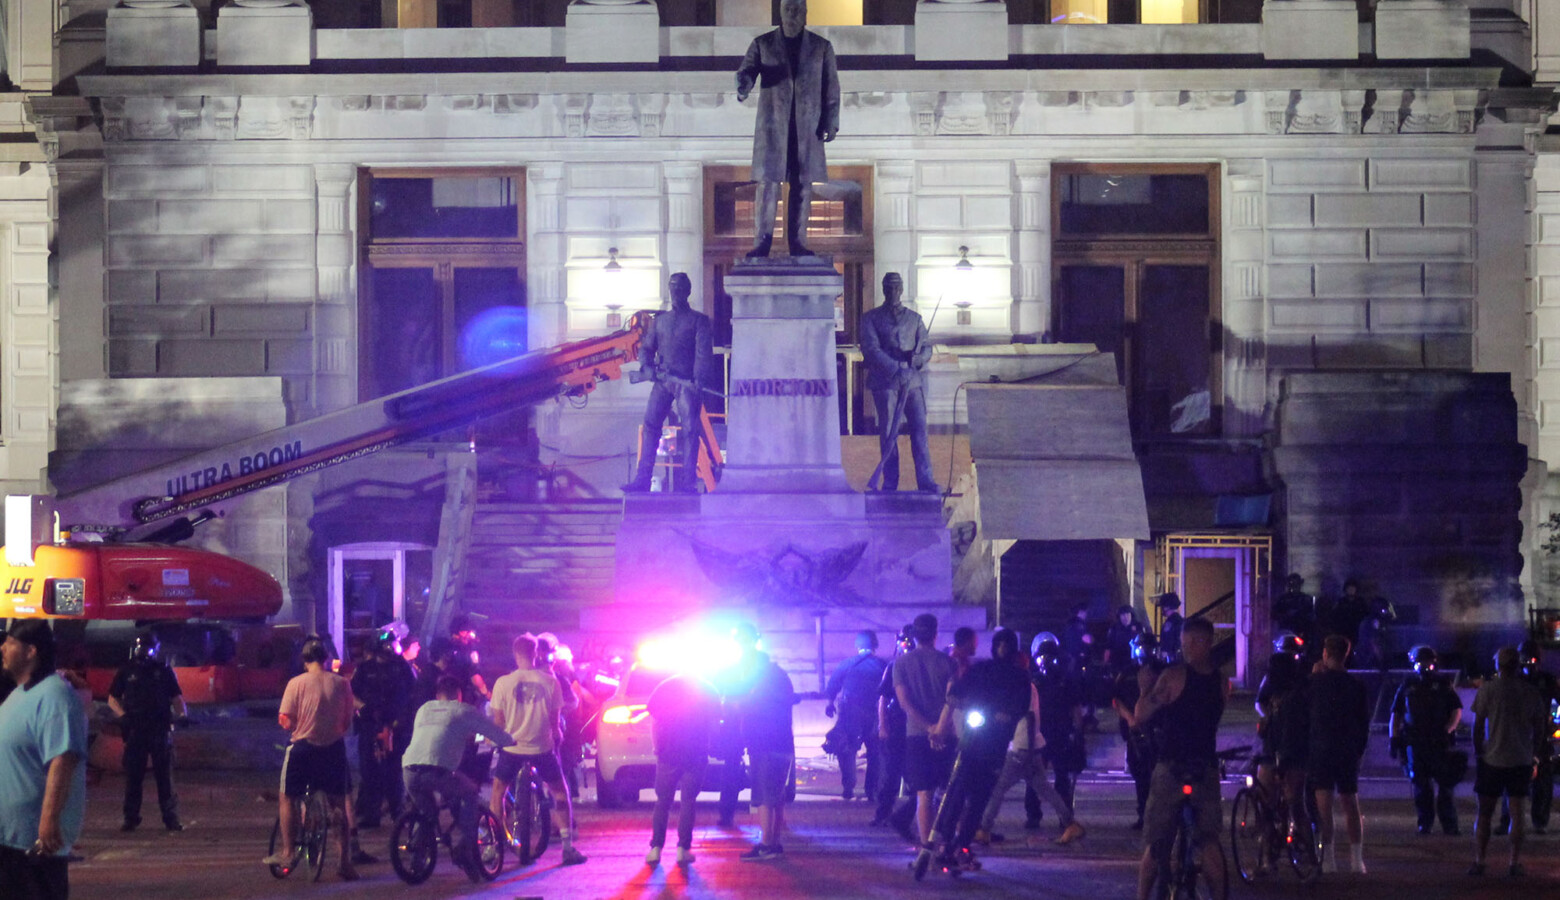 Legislation requiring local governments to prioritize protection of monuments, statues and commemorative property is likely a reaction to 2020's Black Lives Matter protests. (Lauren Chapman/IPB News)